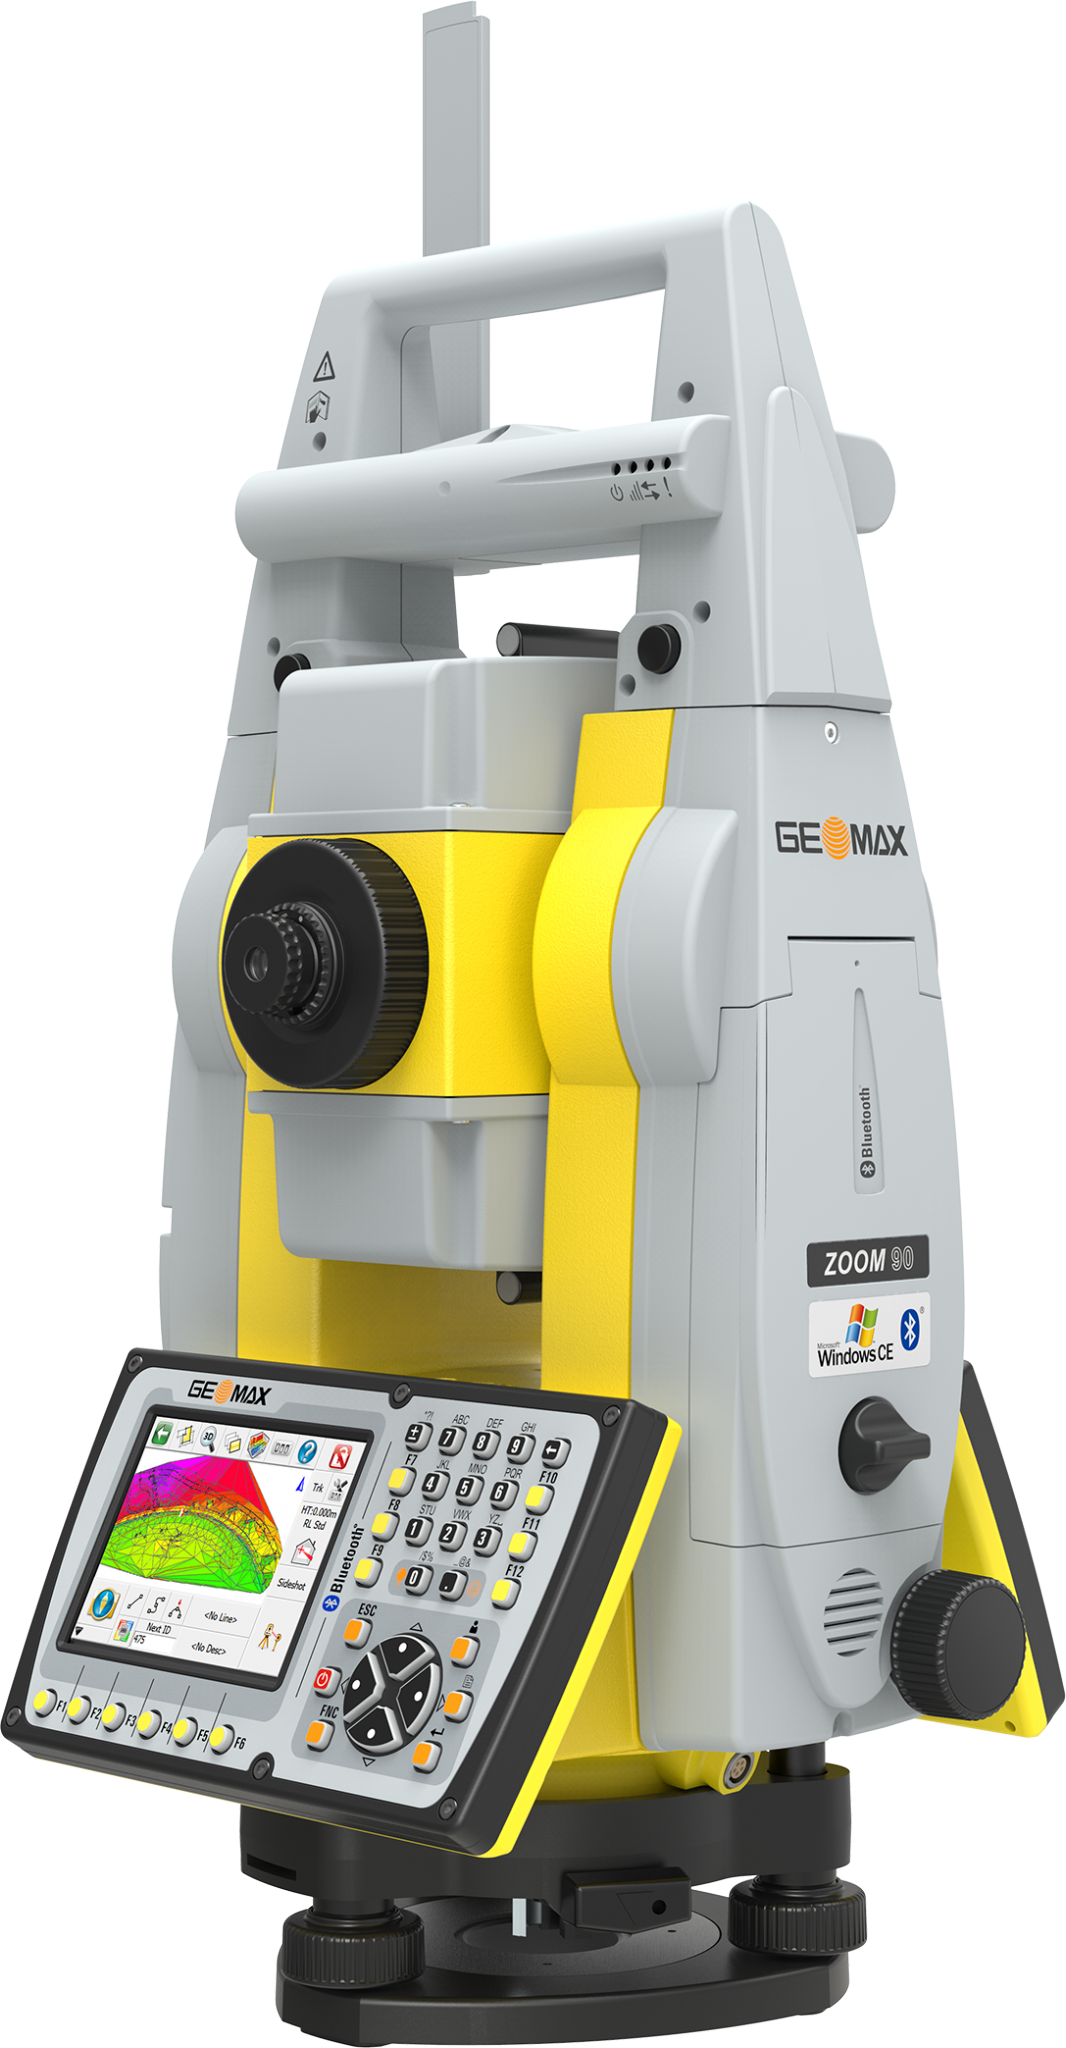 Geomax Zoom90 R 1 Robotic Total Station Package